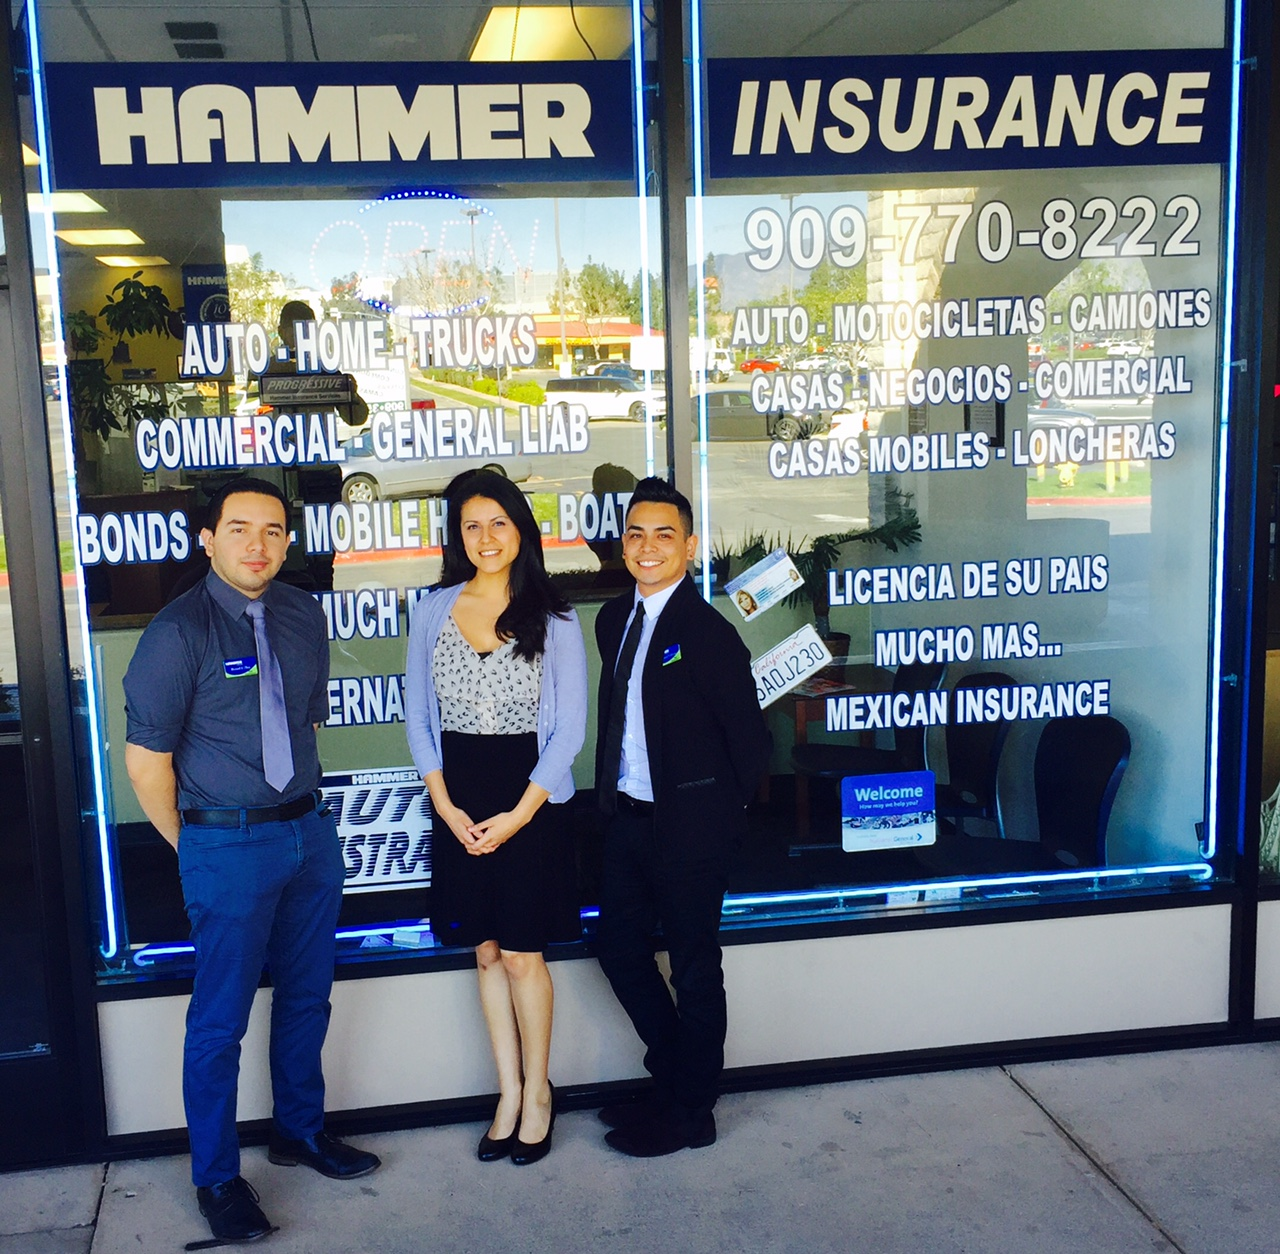 Hammer Insurance Services Inc Fontana 17049 Valley Blvd Ste E